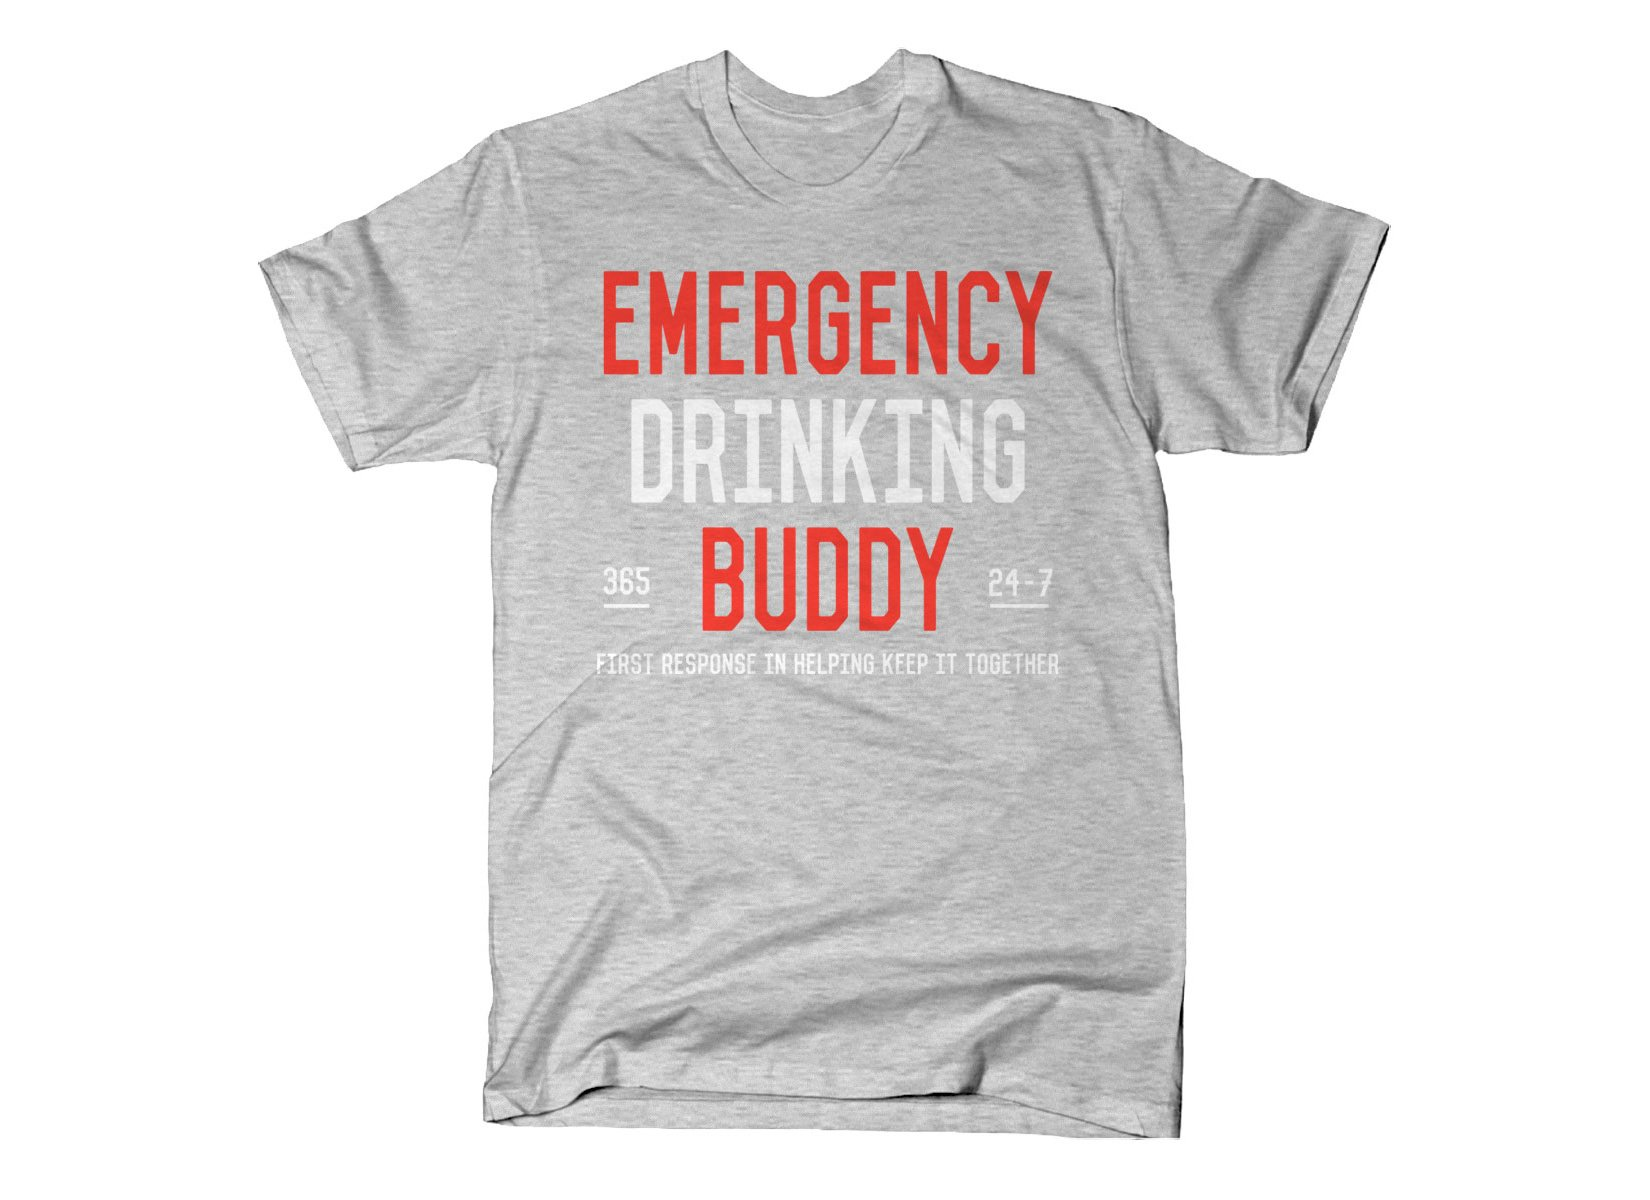 Emergency Drinking Buddy on Mens T-Shirt